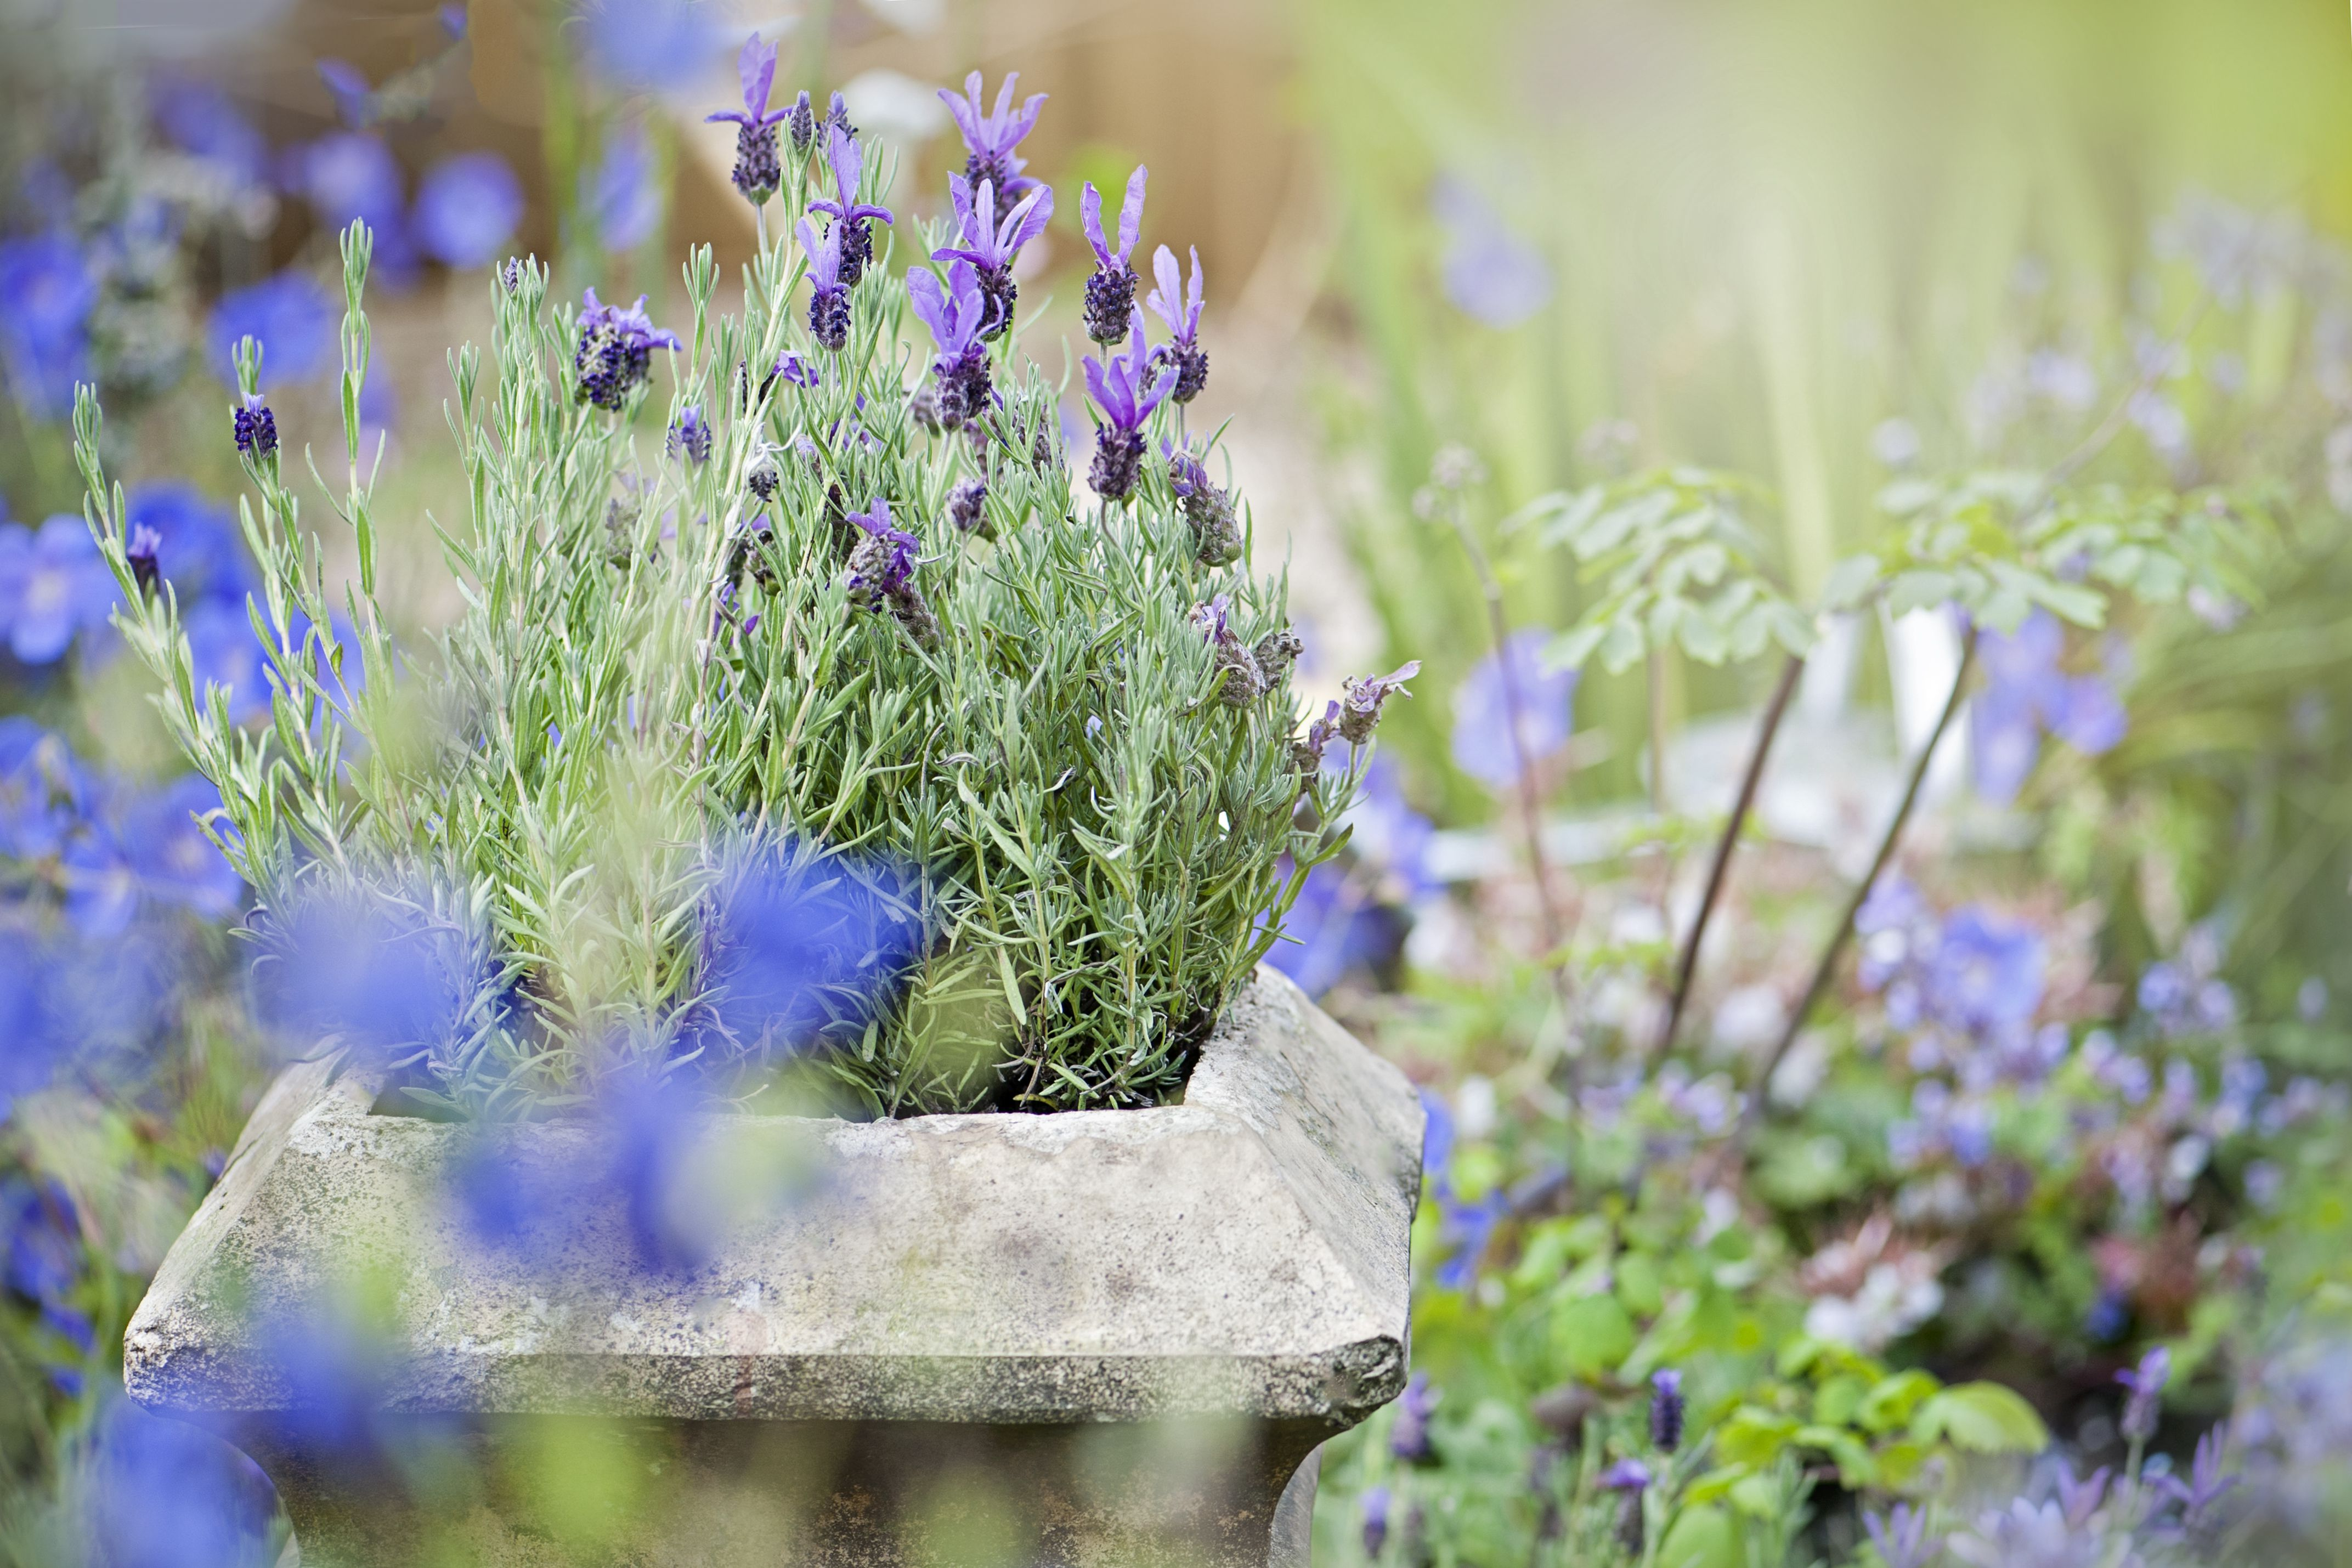 Close-up image of a stone garden planter or container with scented lavender flowers in the summer sunshine